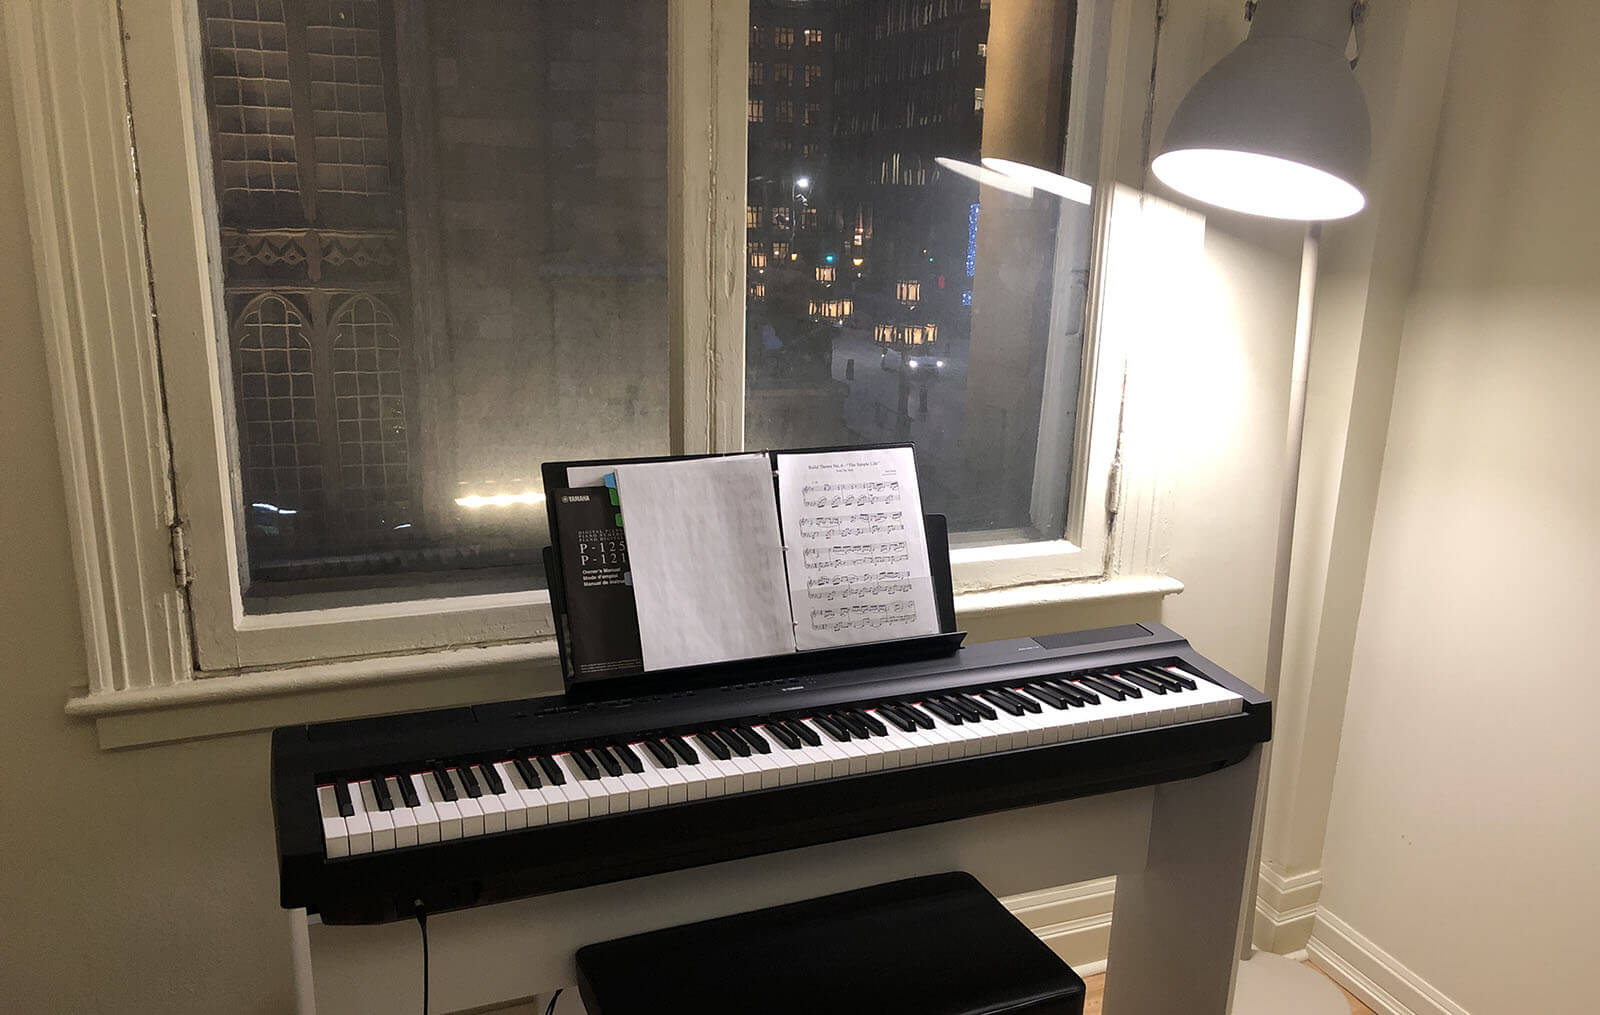 A piano in front of a window